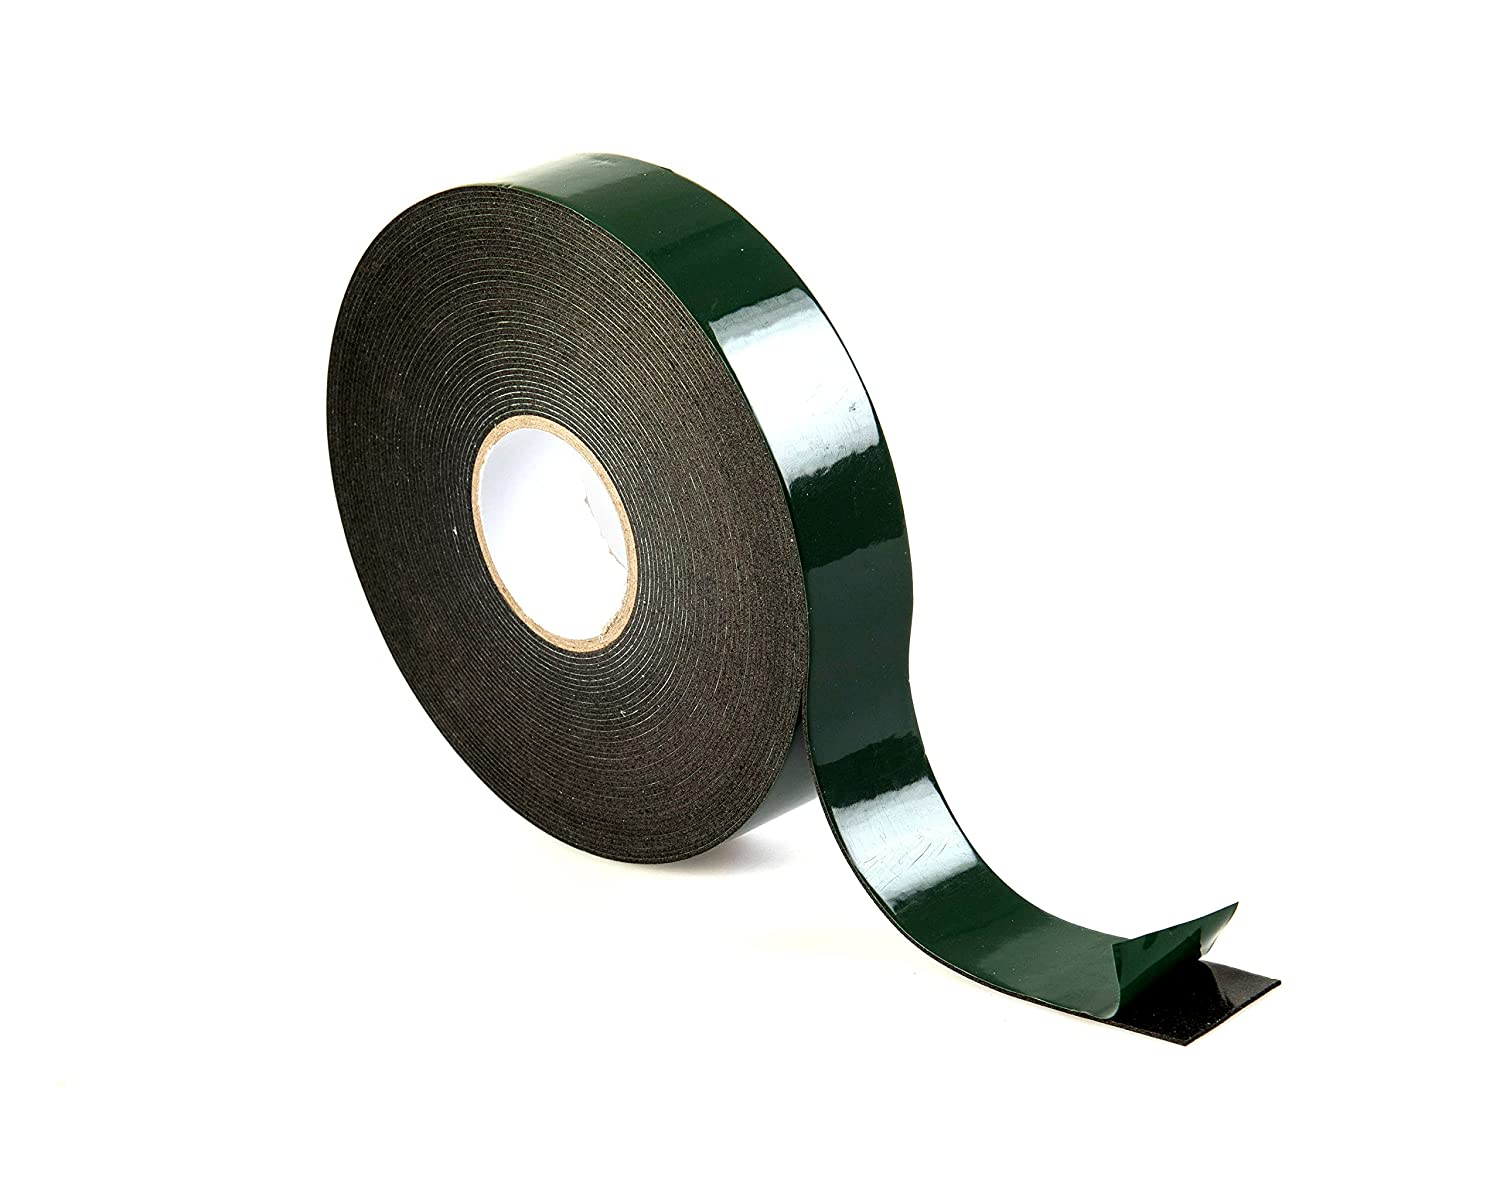 Black Double Sided Foam Tape - 10m x 19mm (3/4') - High Quality Premium Roll by Gocableties